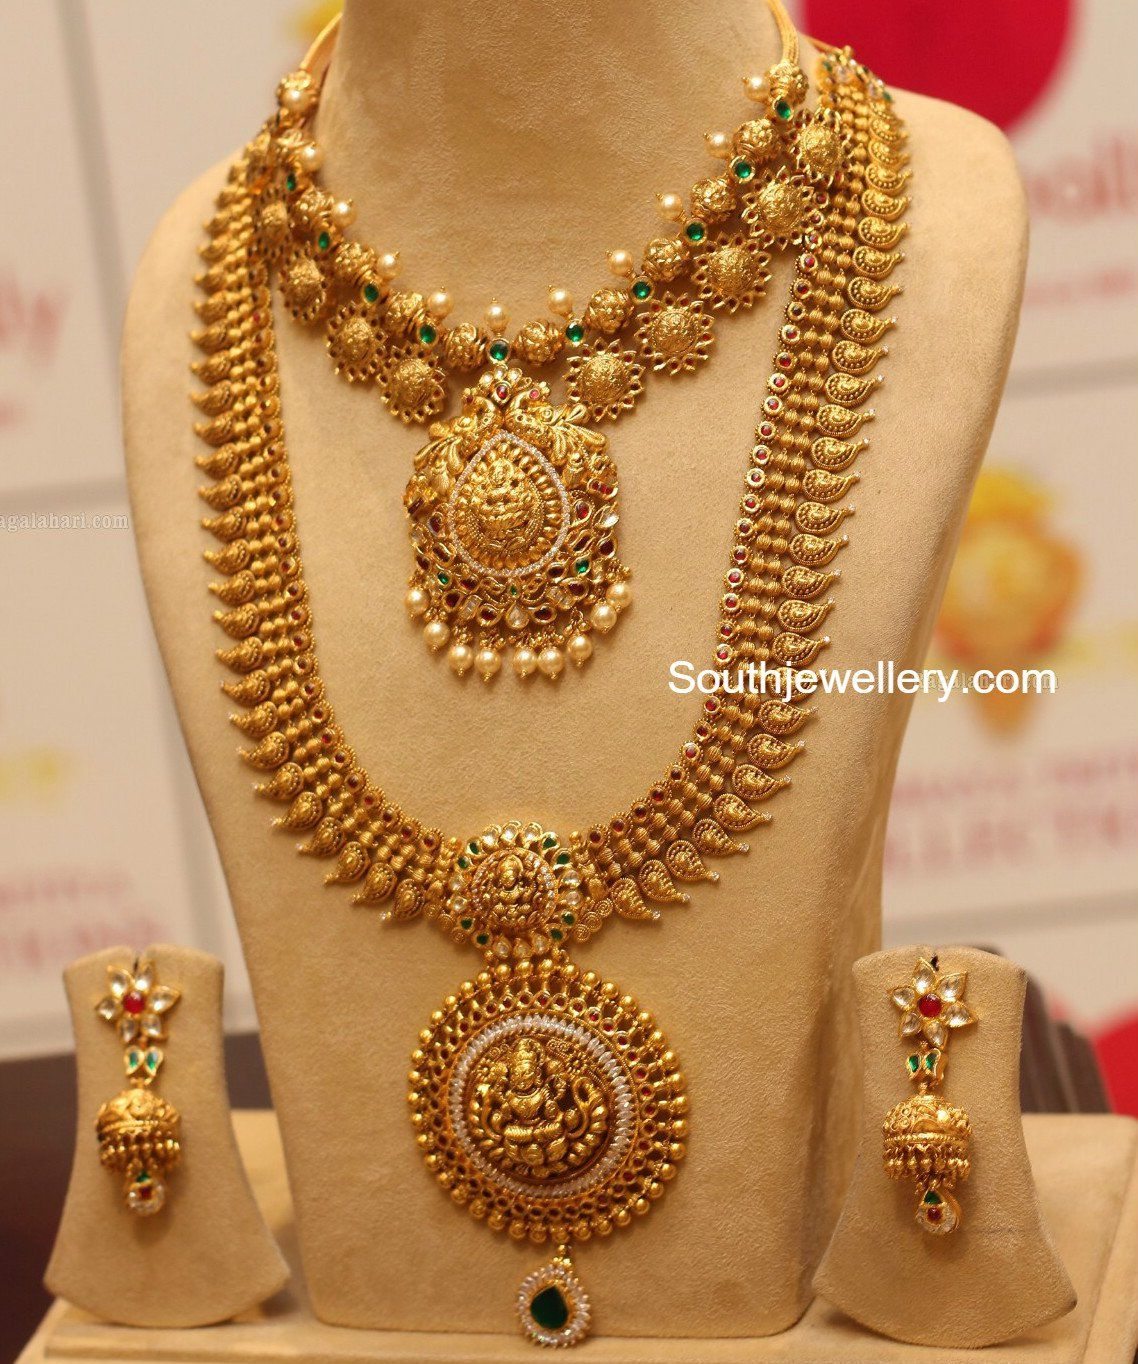 Chandbali Pendant Antique Haram Set | Antique gold, Gold and ...